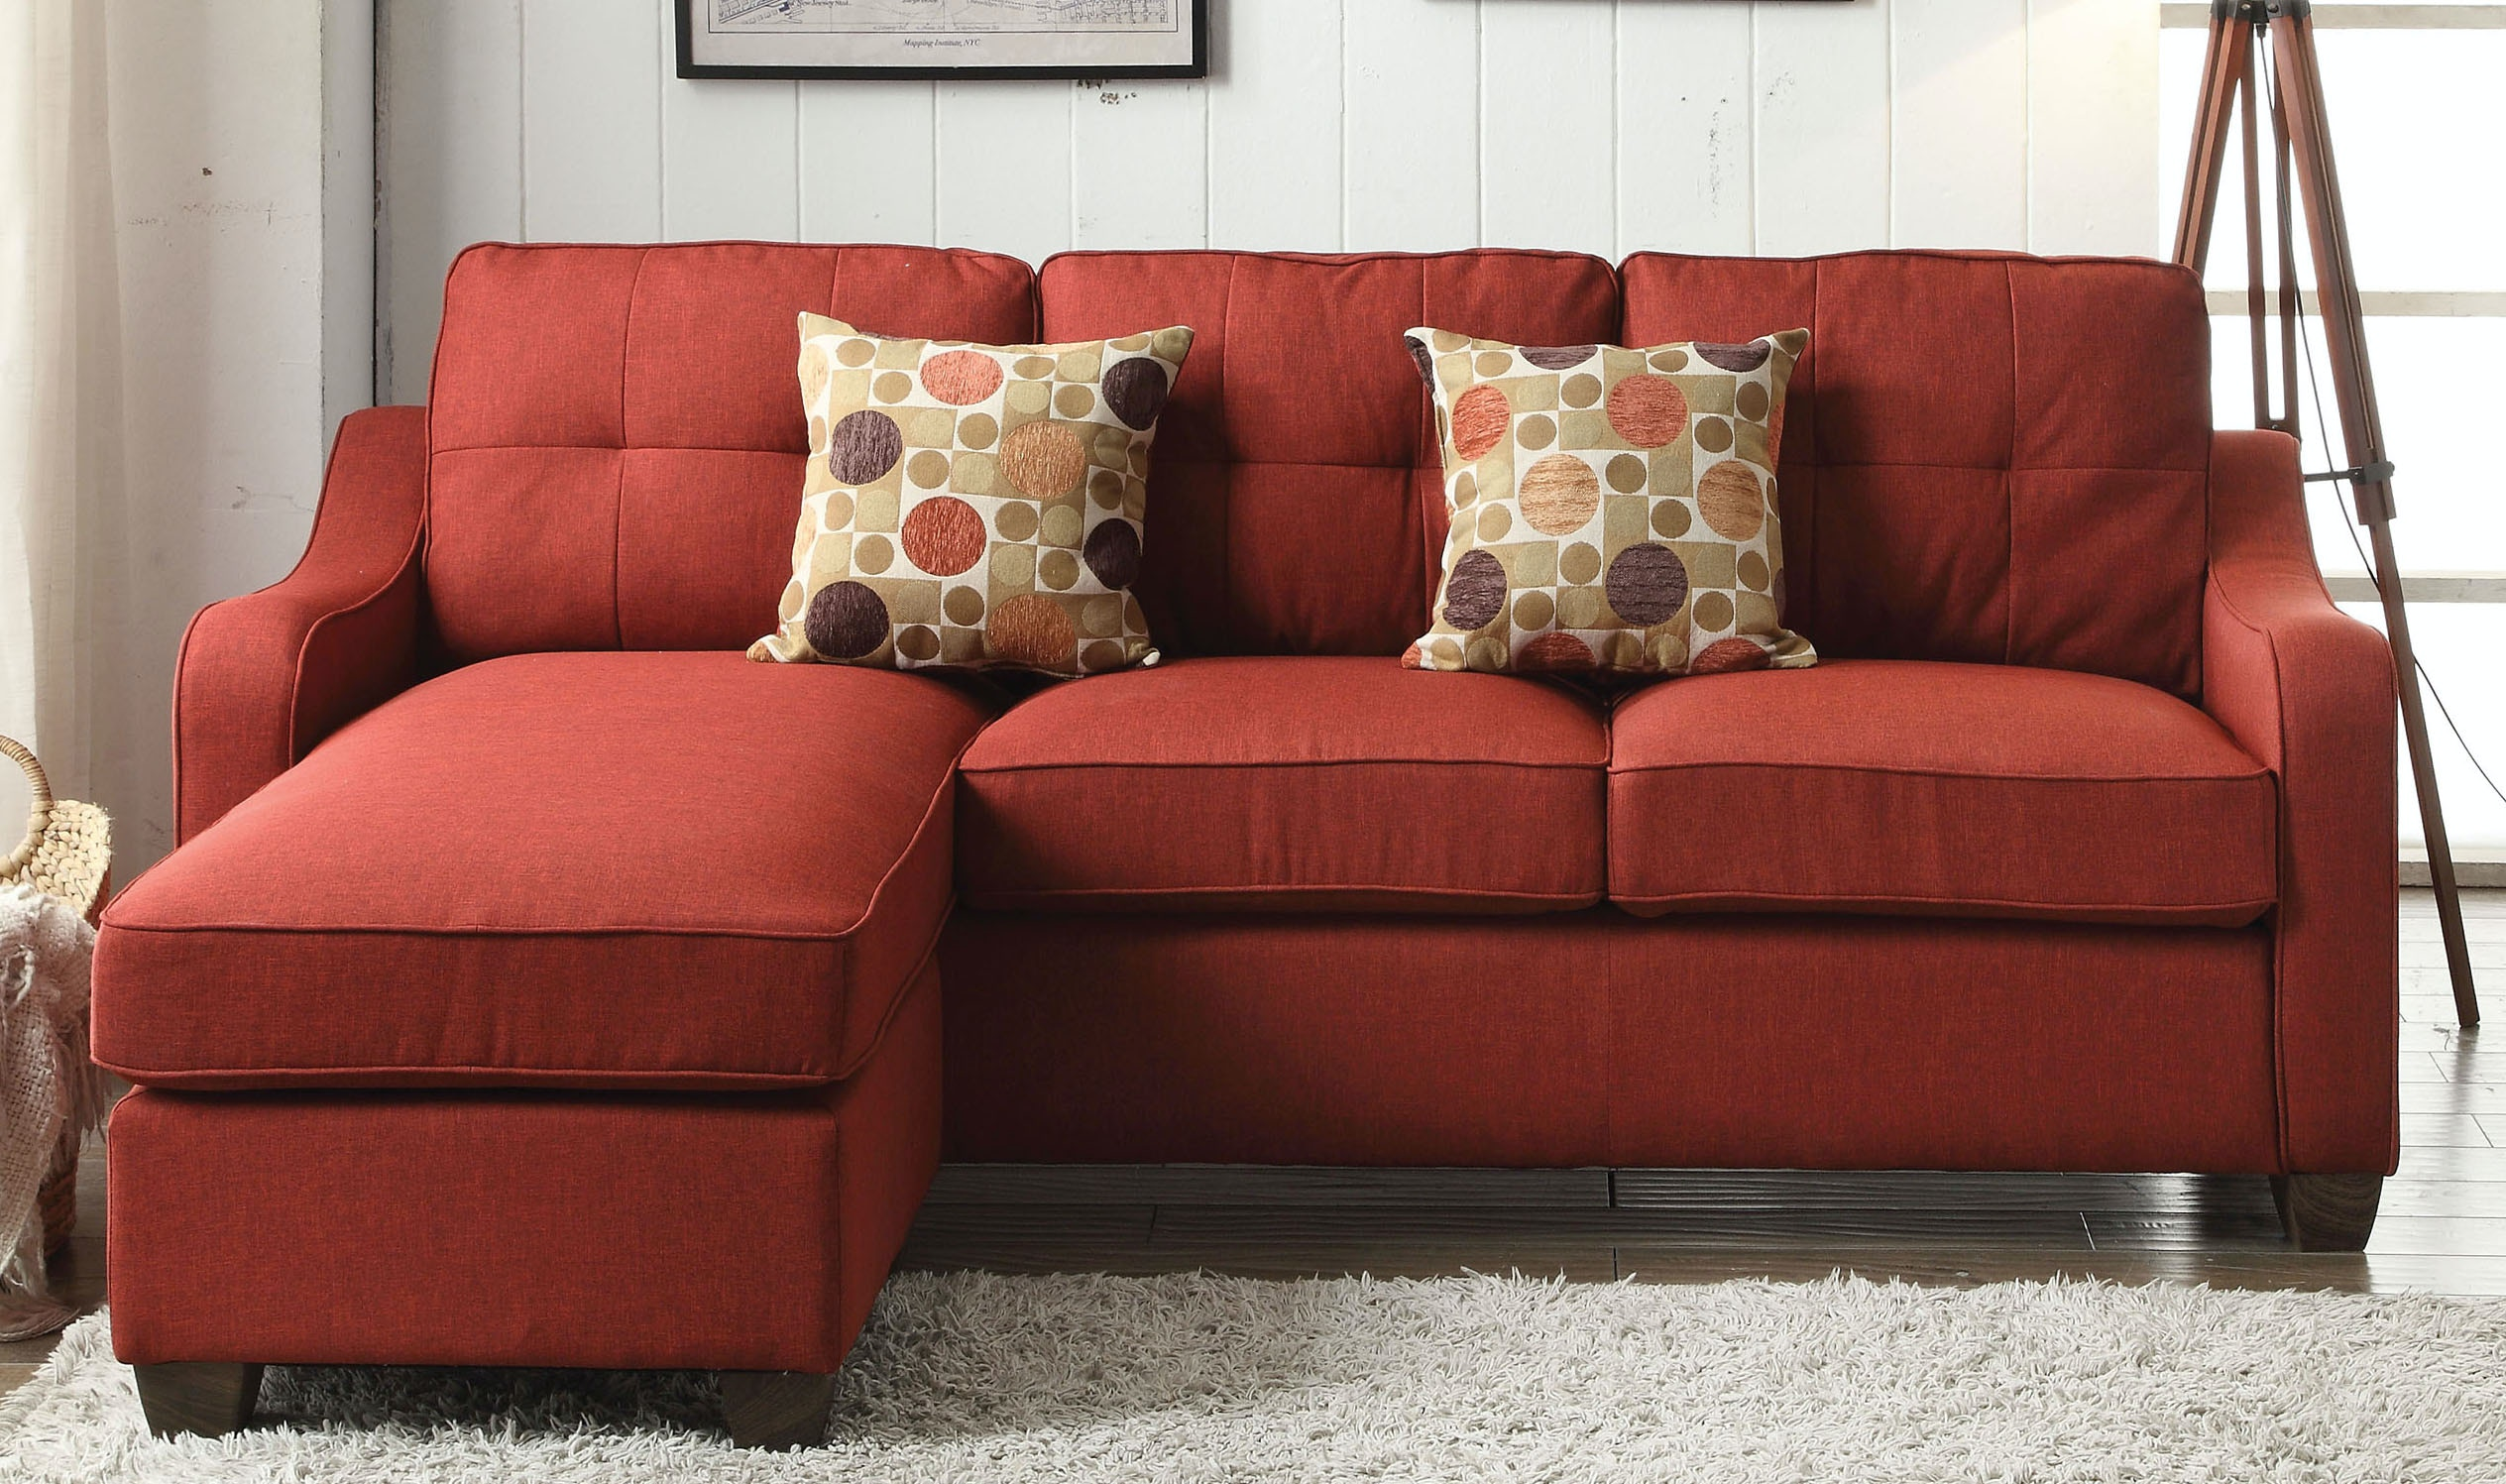 Acme Furniture Cleavon II Sectional Sofa With 2 Pillows 53740